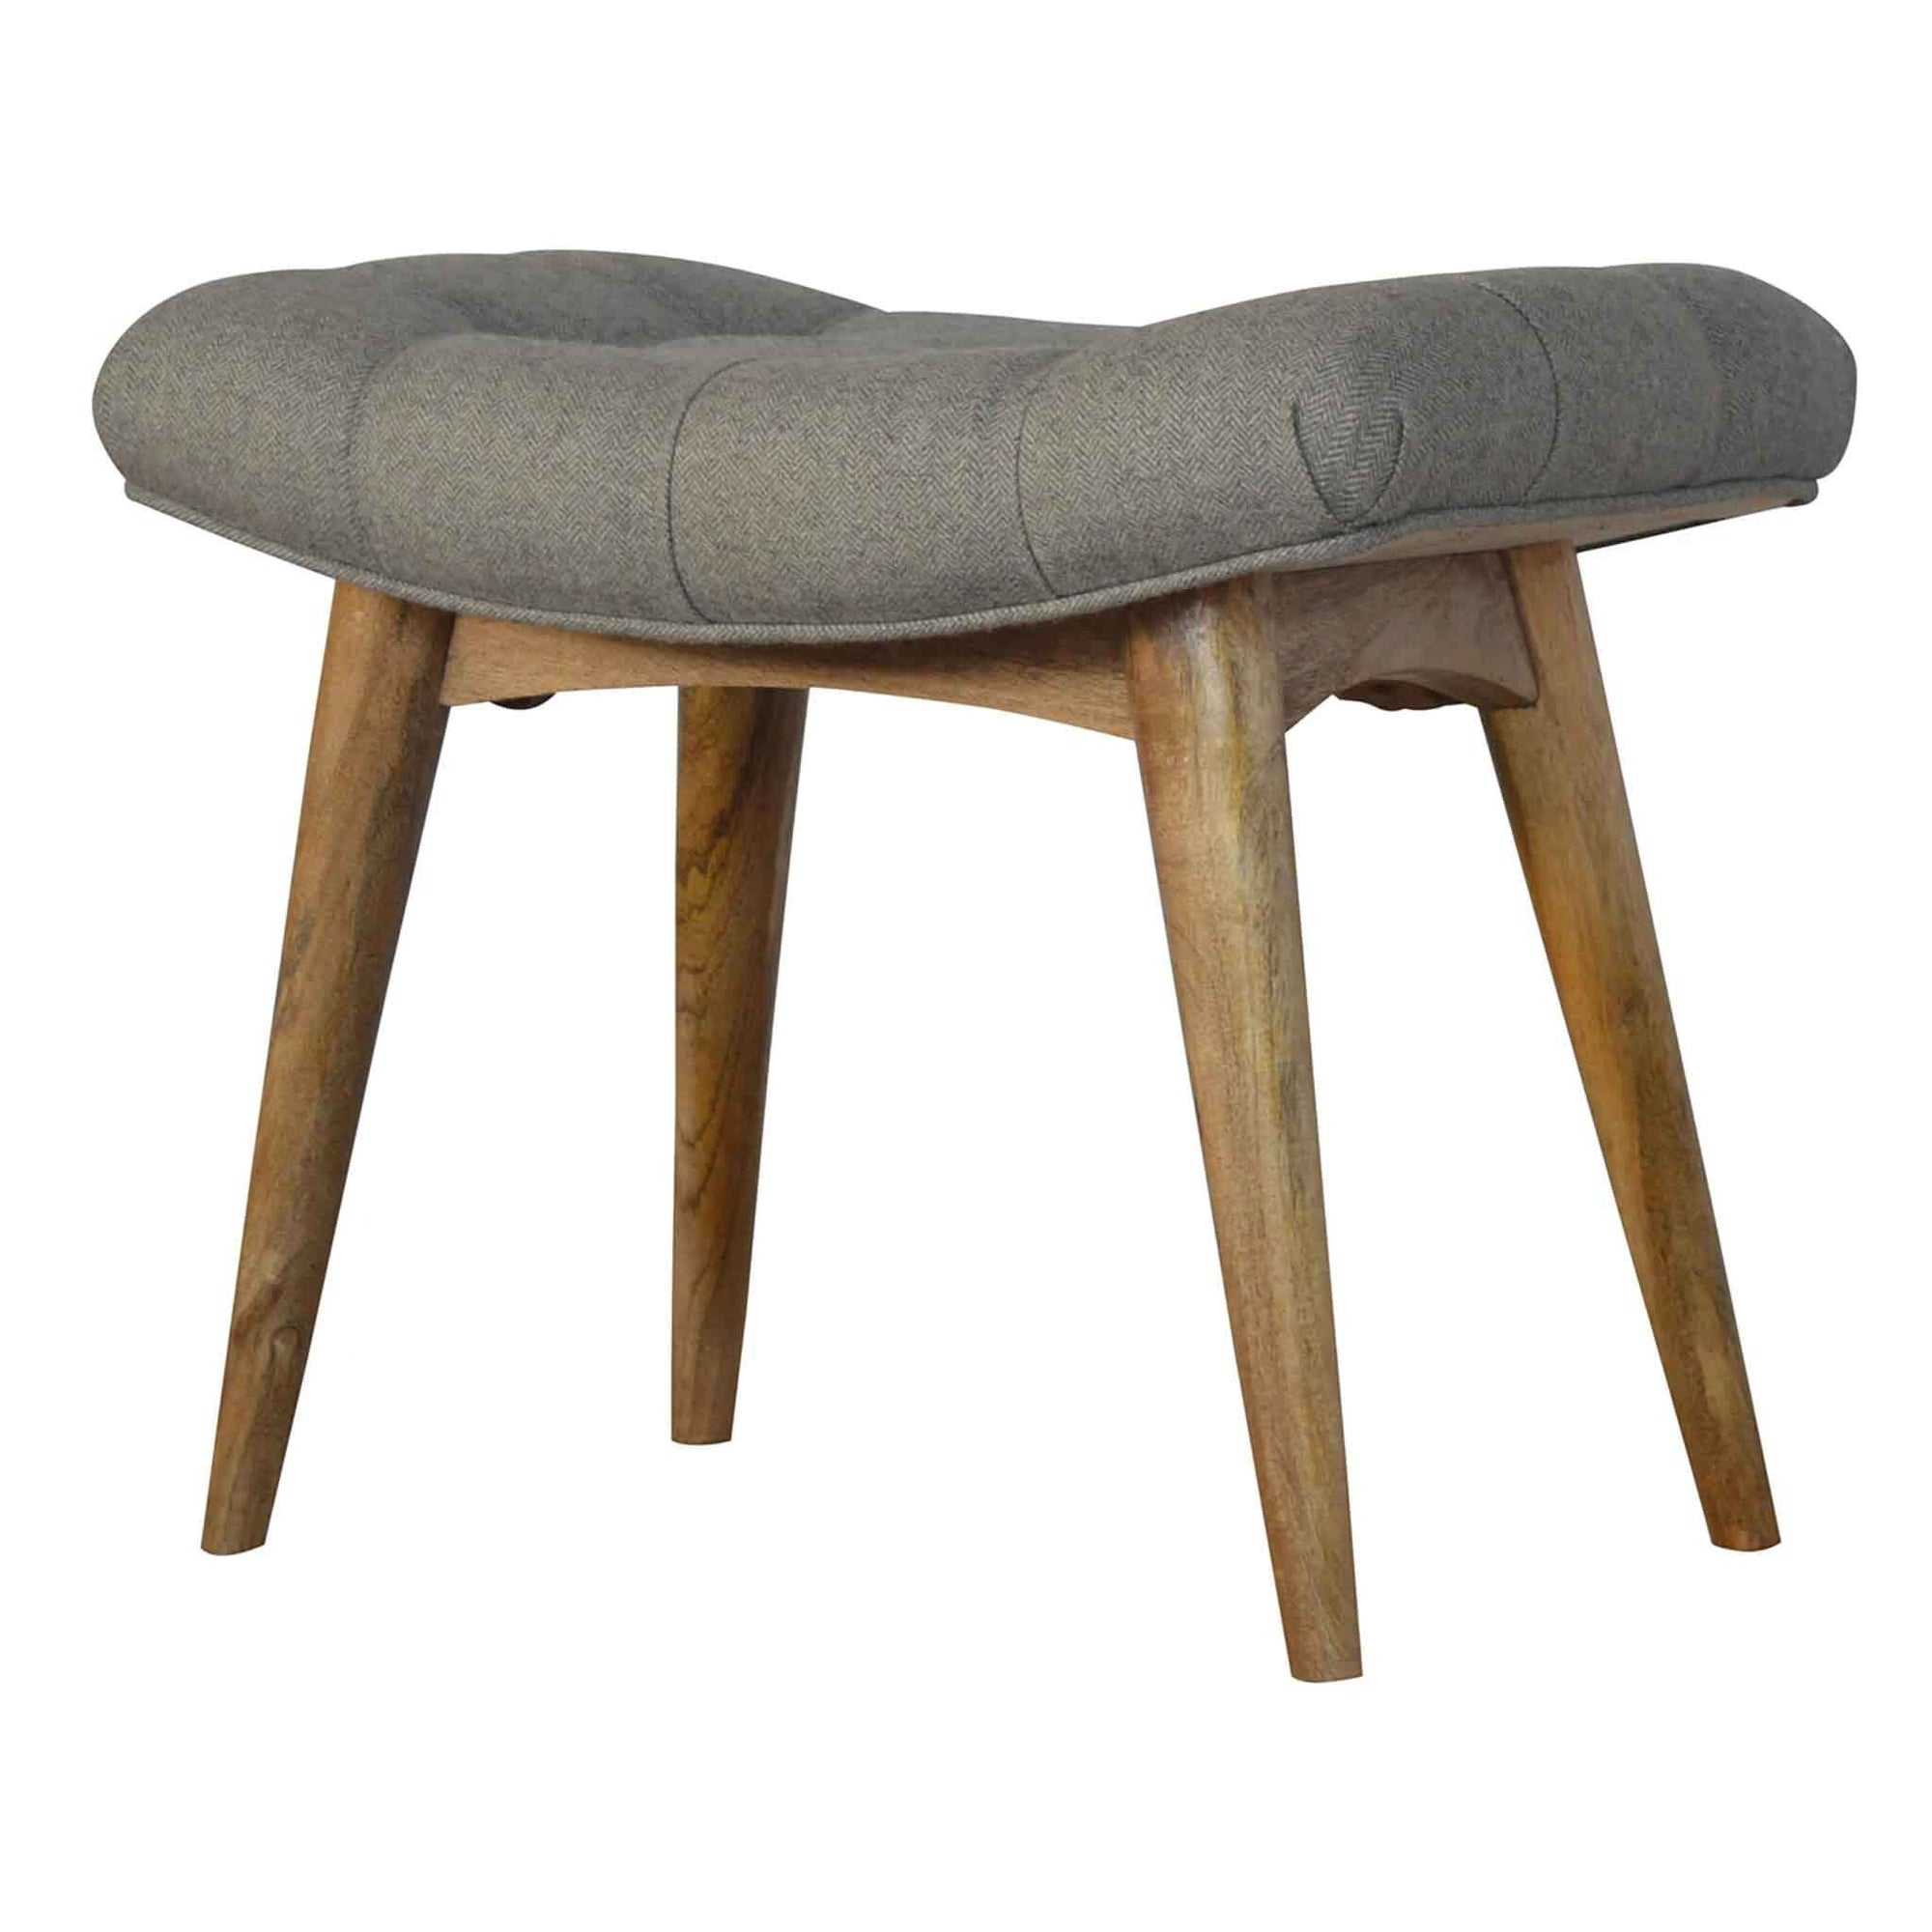 The Artisan Upholstered Grey Curved Tweed Wooden Bench from Roseland Furniture